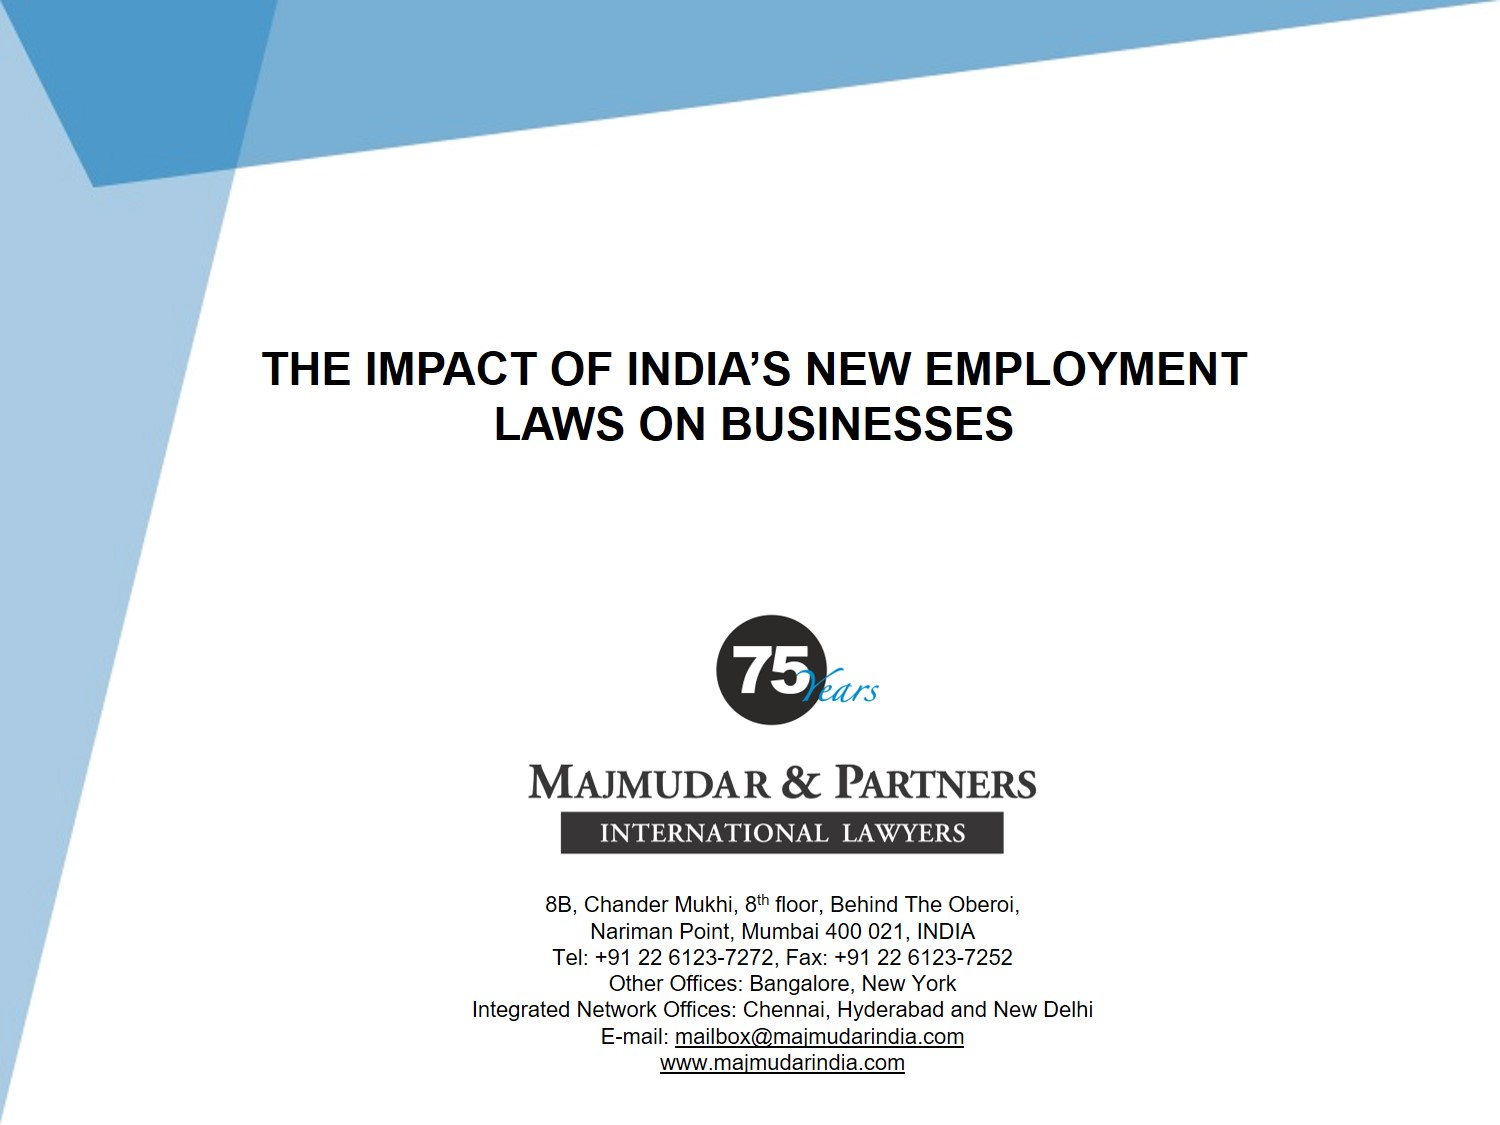 Majmudar & Partners - Impact of New Employment Laws on Businesses